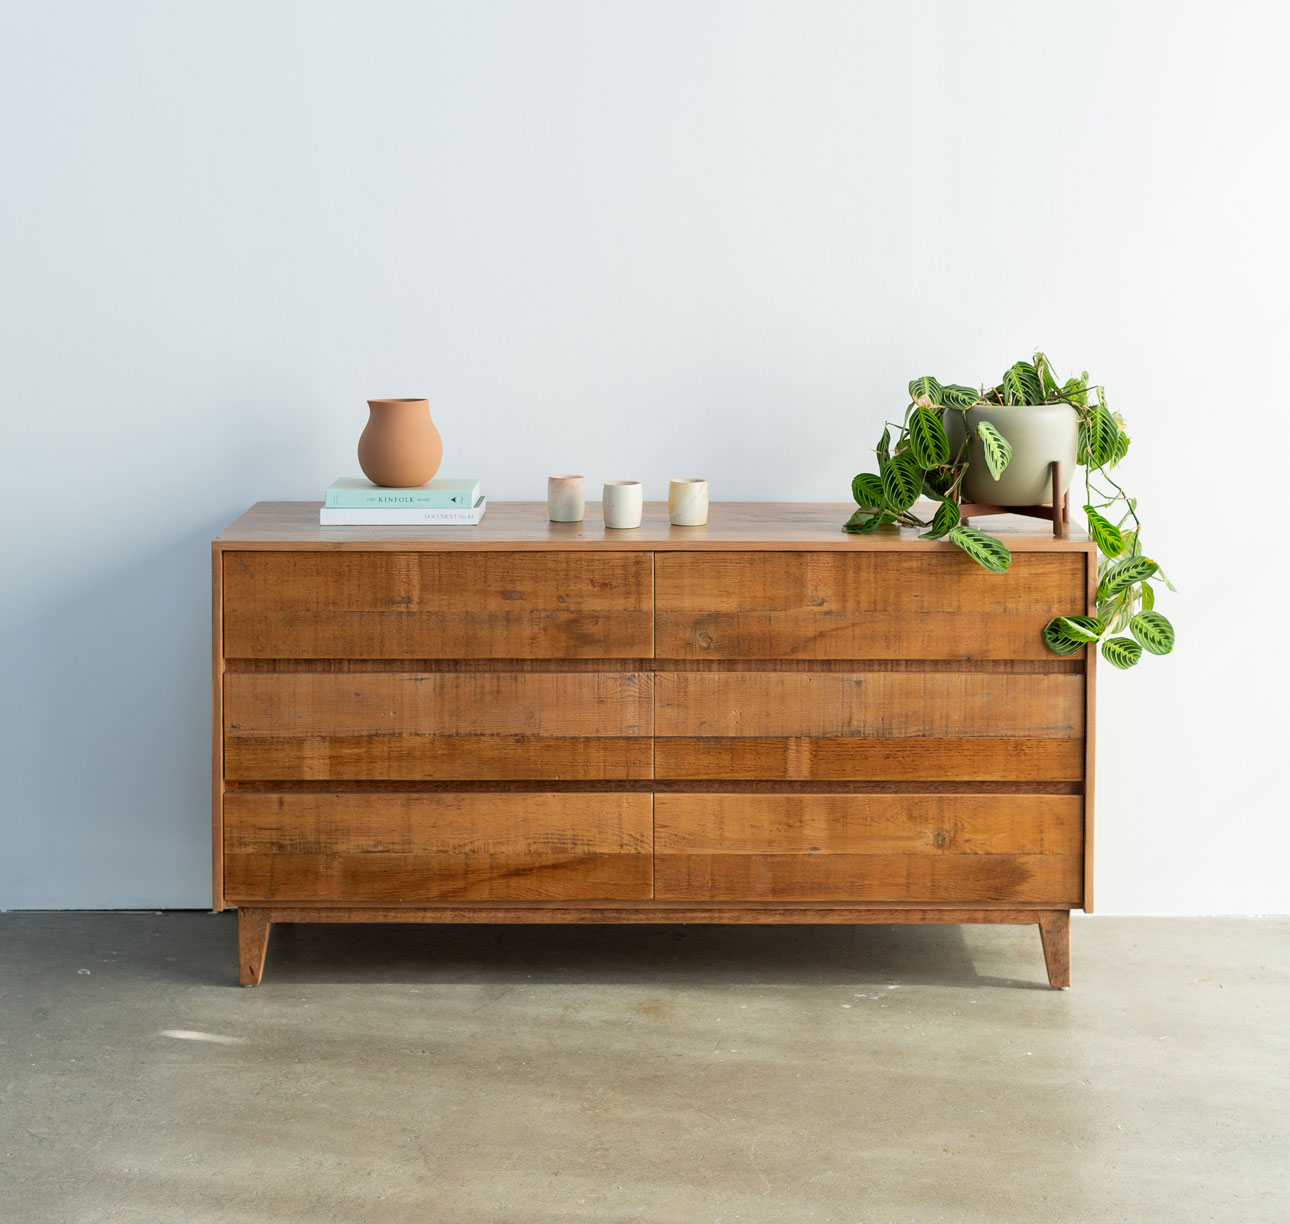 Natural Reclaimed Wood Dresser Avocado Green Mattress